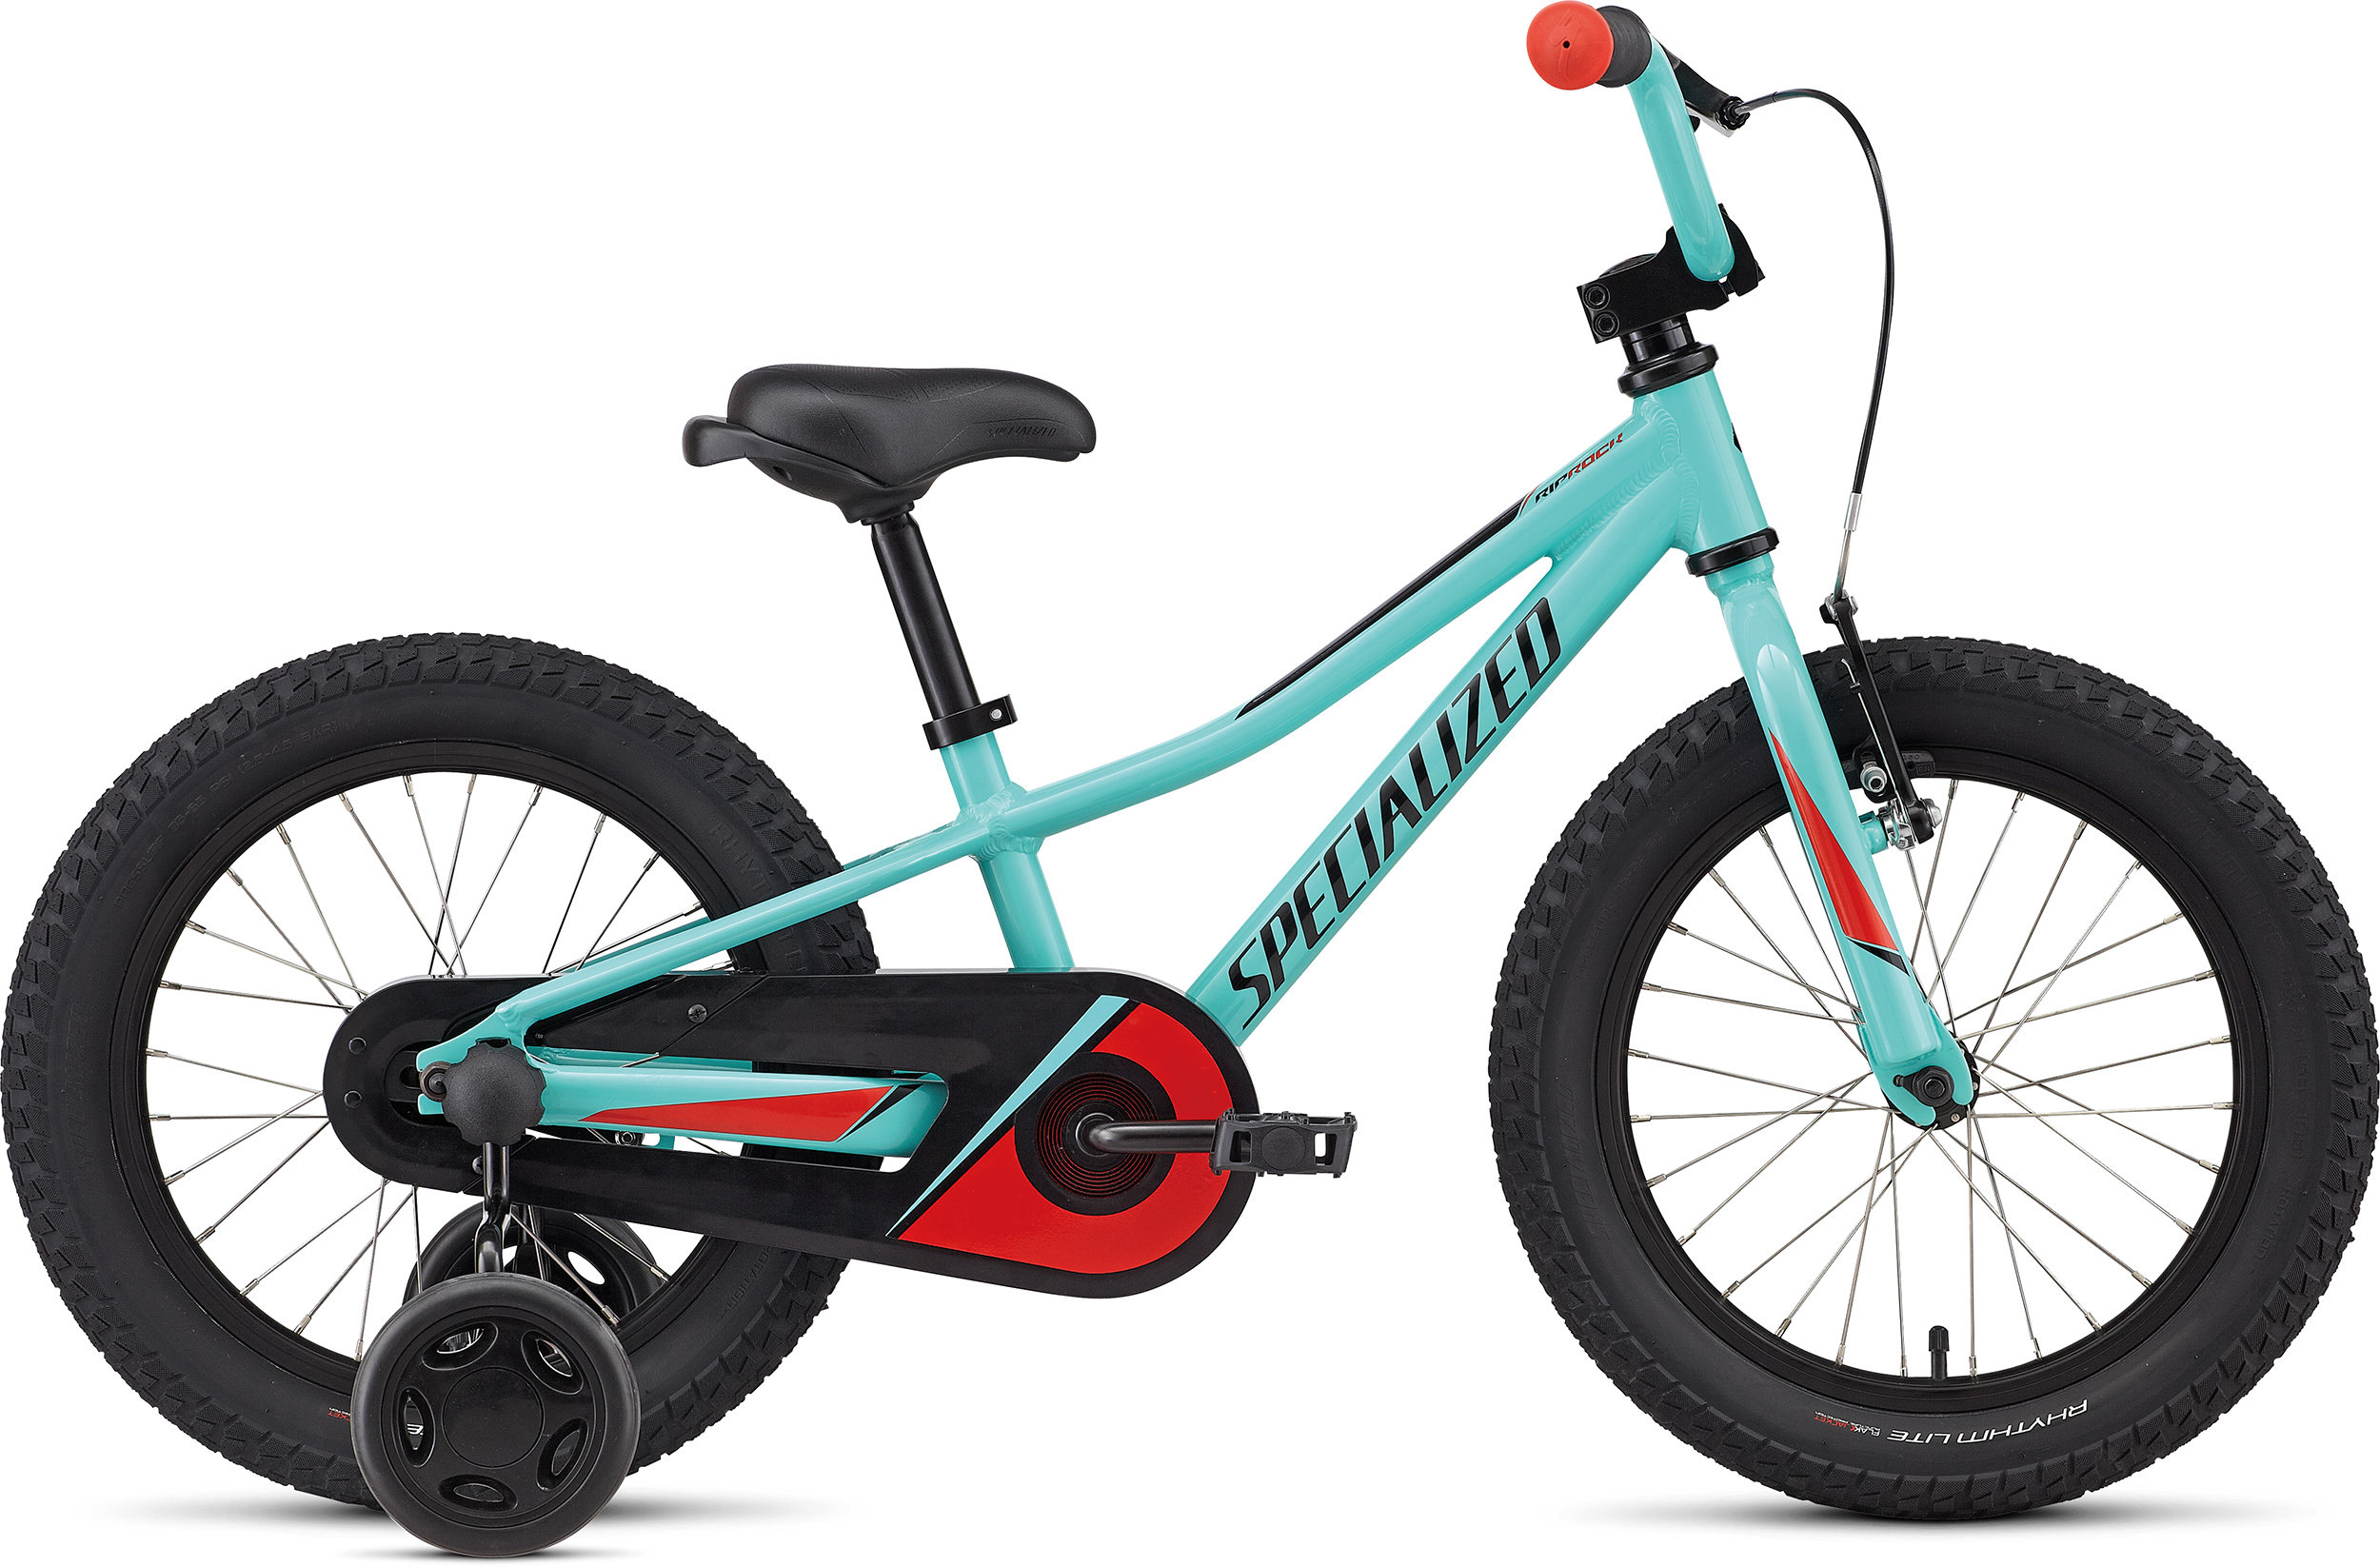 Specialized Riprock Coaster 16 Gloss Light Turquoise/Nordic Red/Black 7 - Fahrrad online kaufen | Online Shop Bike Profis